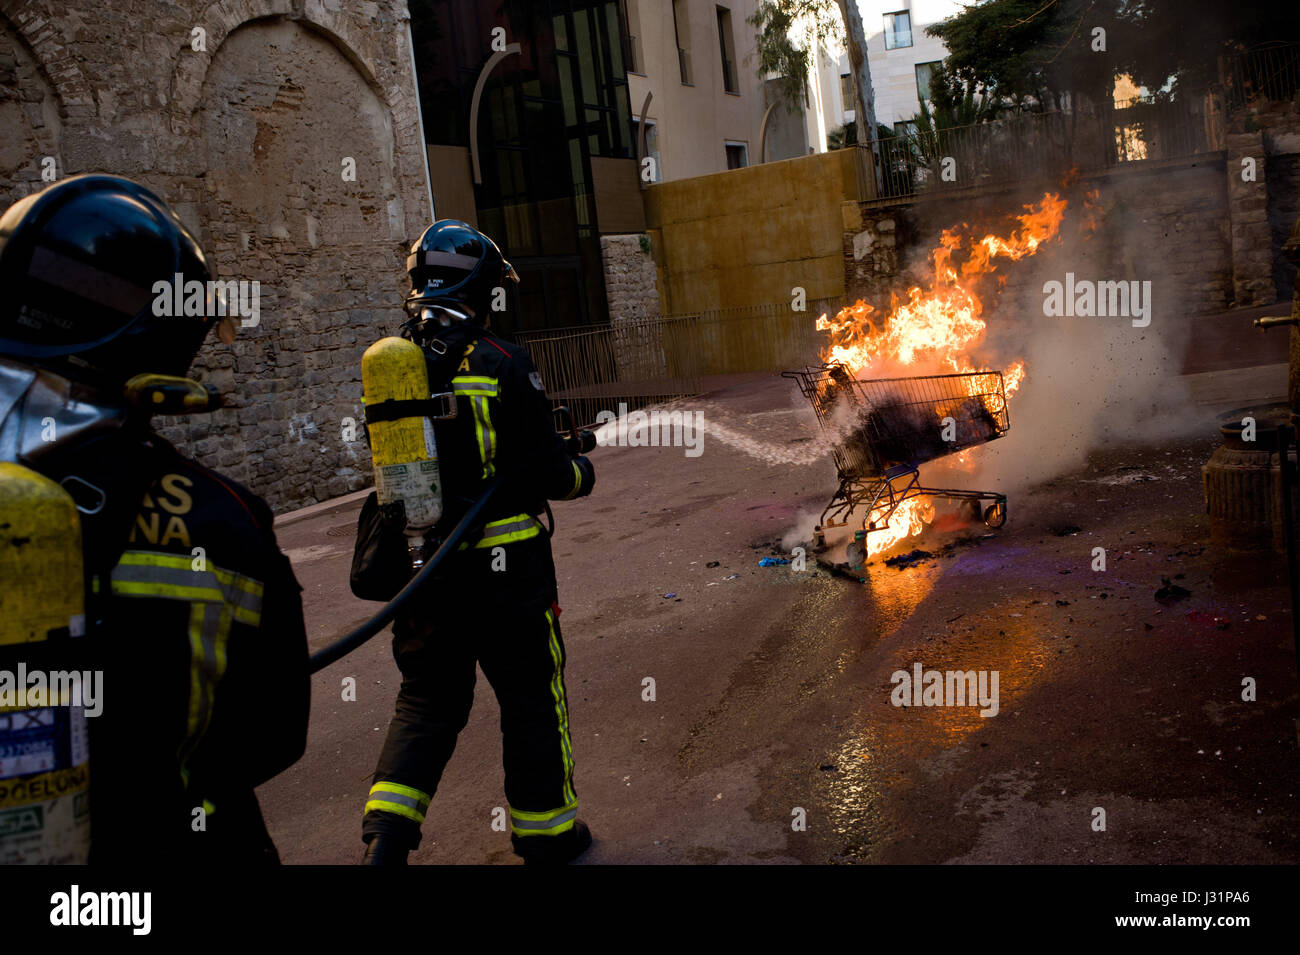 May 1, 2017 - Barcelona, Catalonia, Spain - Firefighters extinguish a burning shopping trolley during a May Day - Stock Image